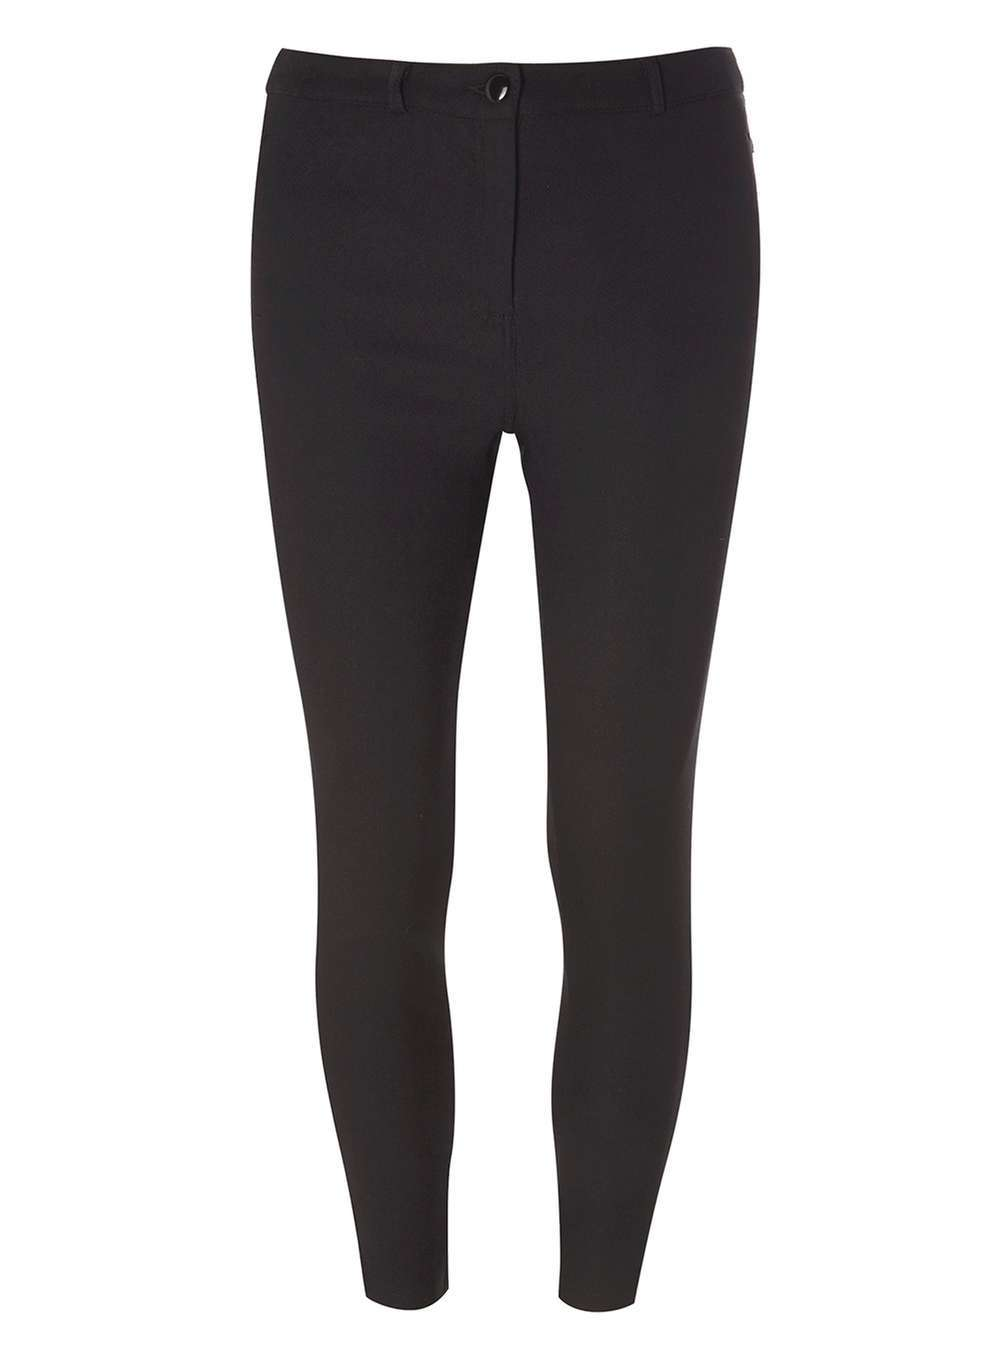 Womens Black Textured Bengaline Trousers Black - length: standard; pattern: plain; waist: mid/regular rise; predominant colour: black; occasions: casual, creative work; texture group: jersey - clingy; fit: skinny/tight leg; pattern type: fabric; style: standard; fibres: viscose/rayon - mix; season: a/w 2016